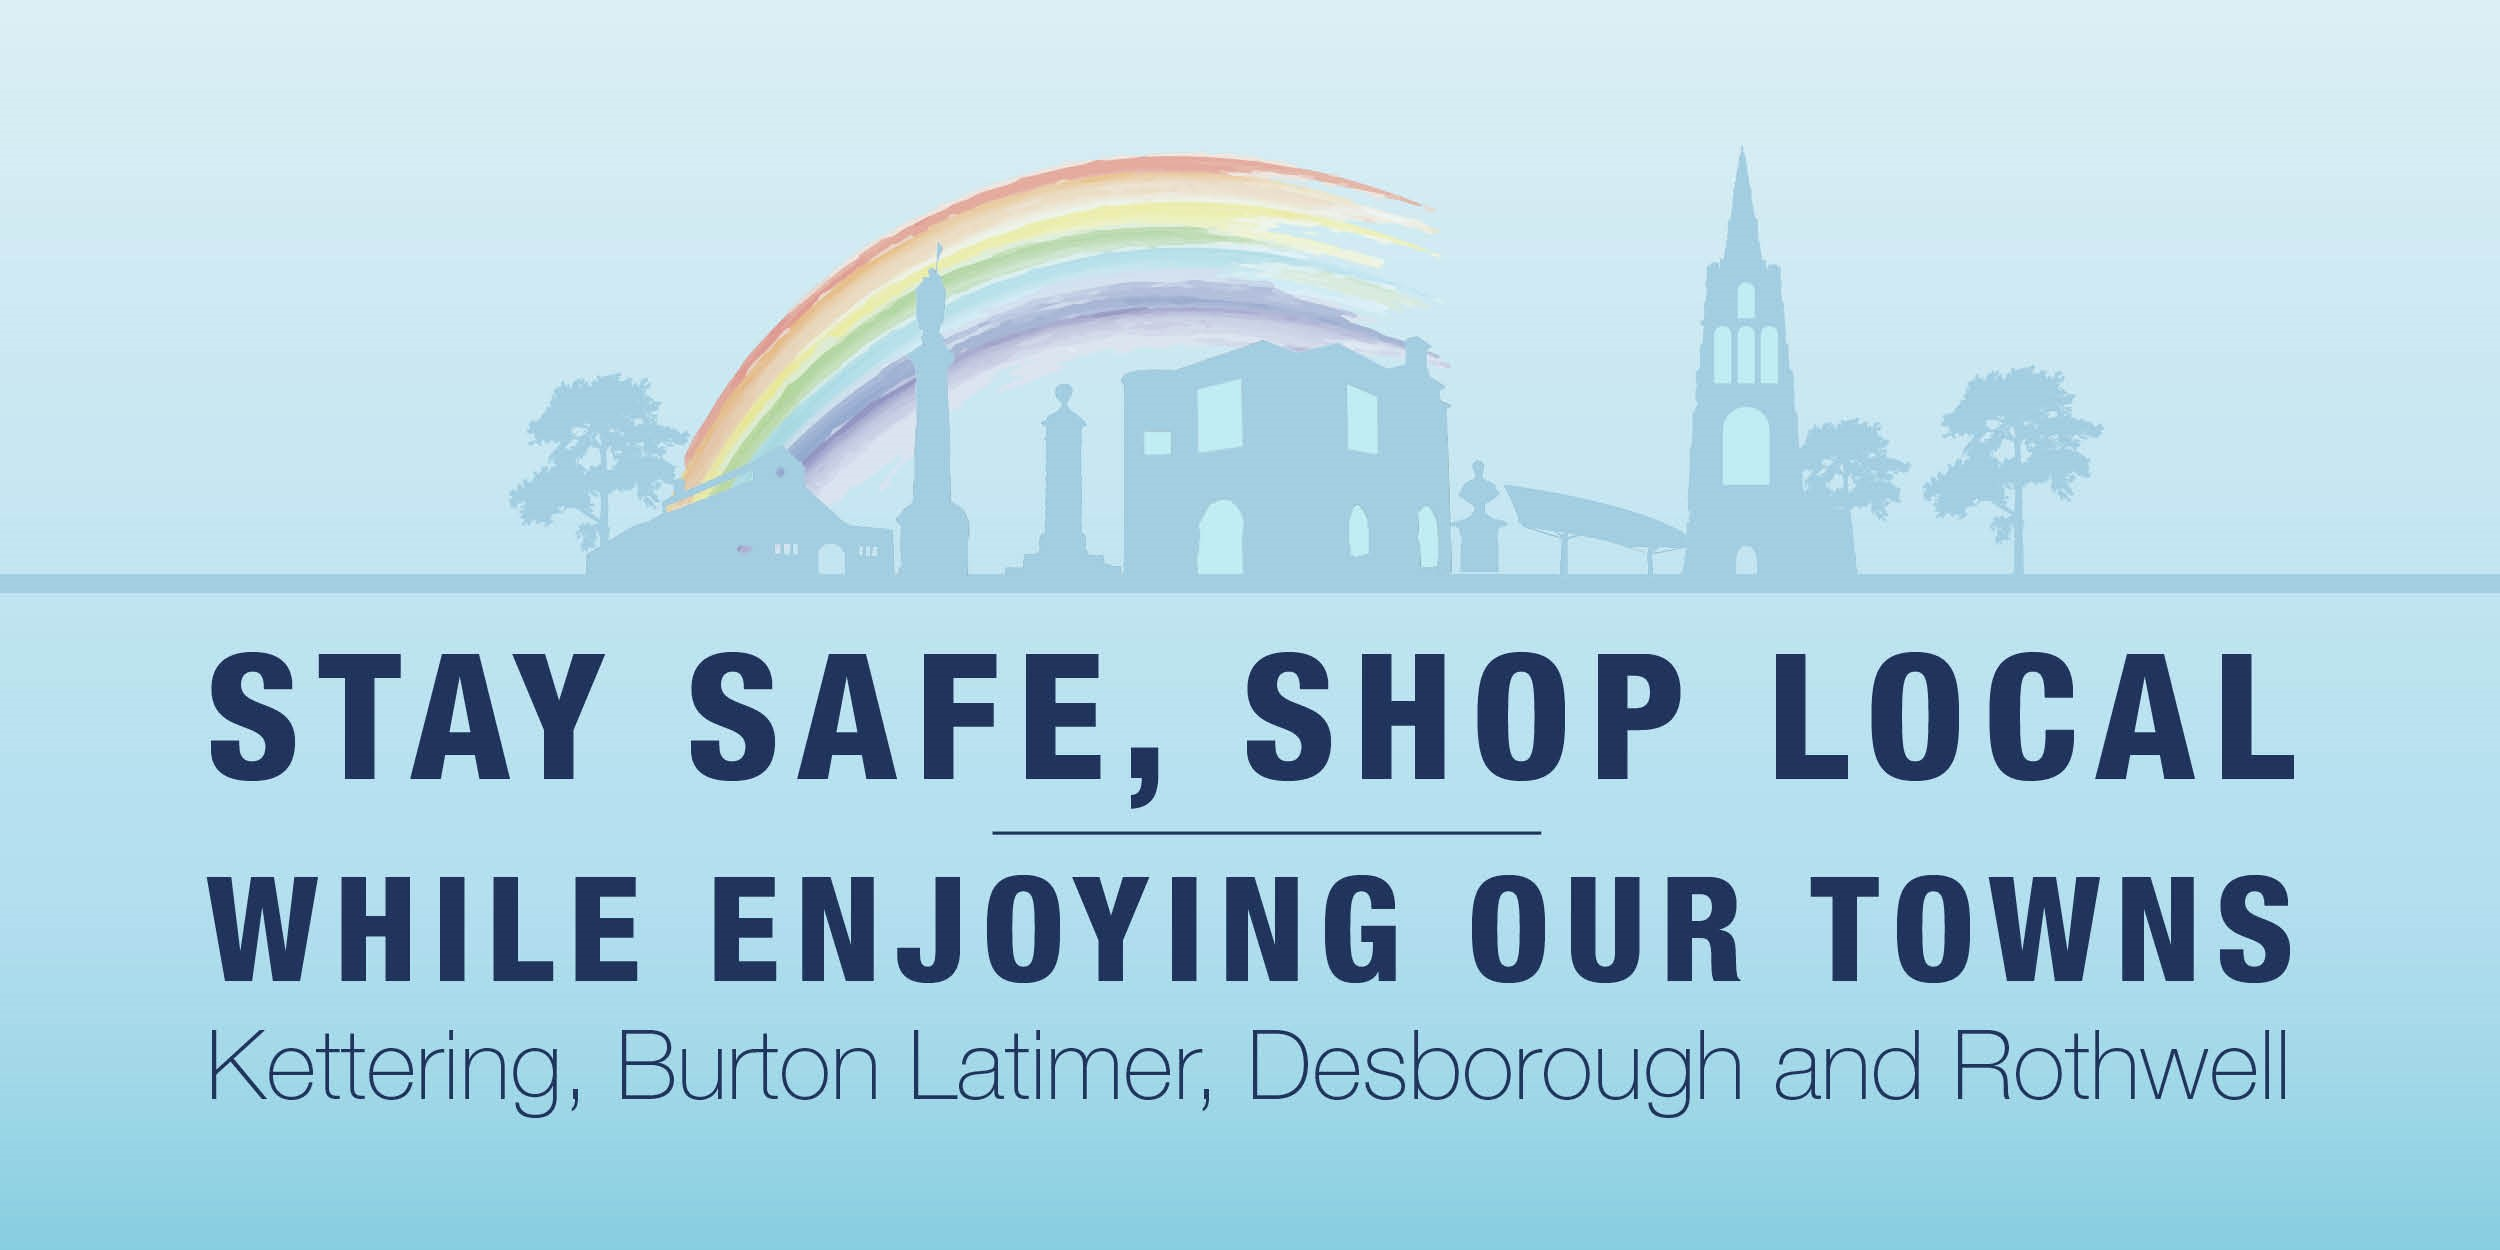 Stay Safe, Shop Local FB image.PNG